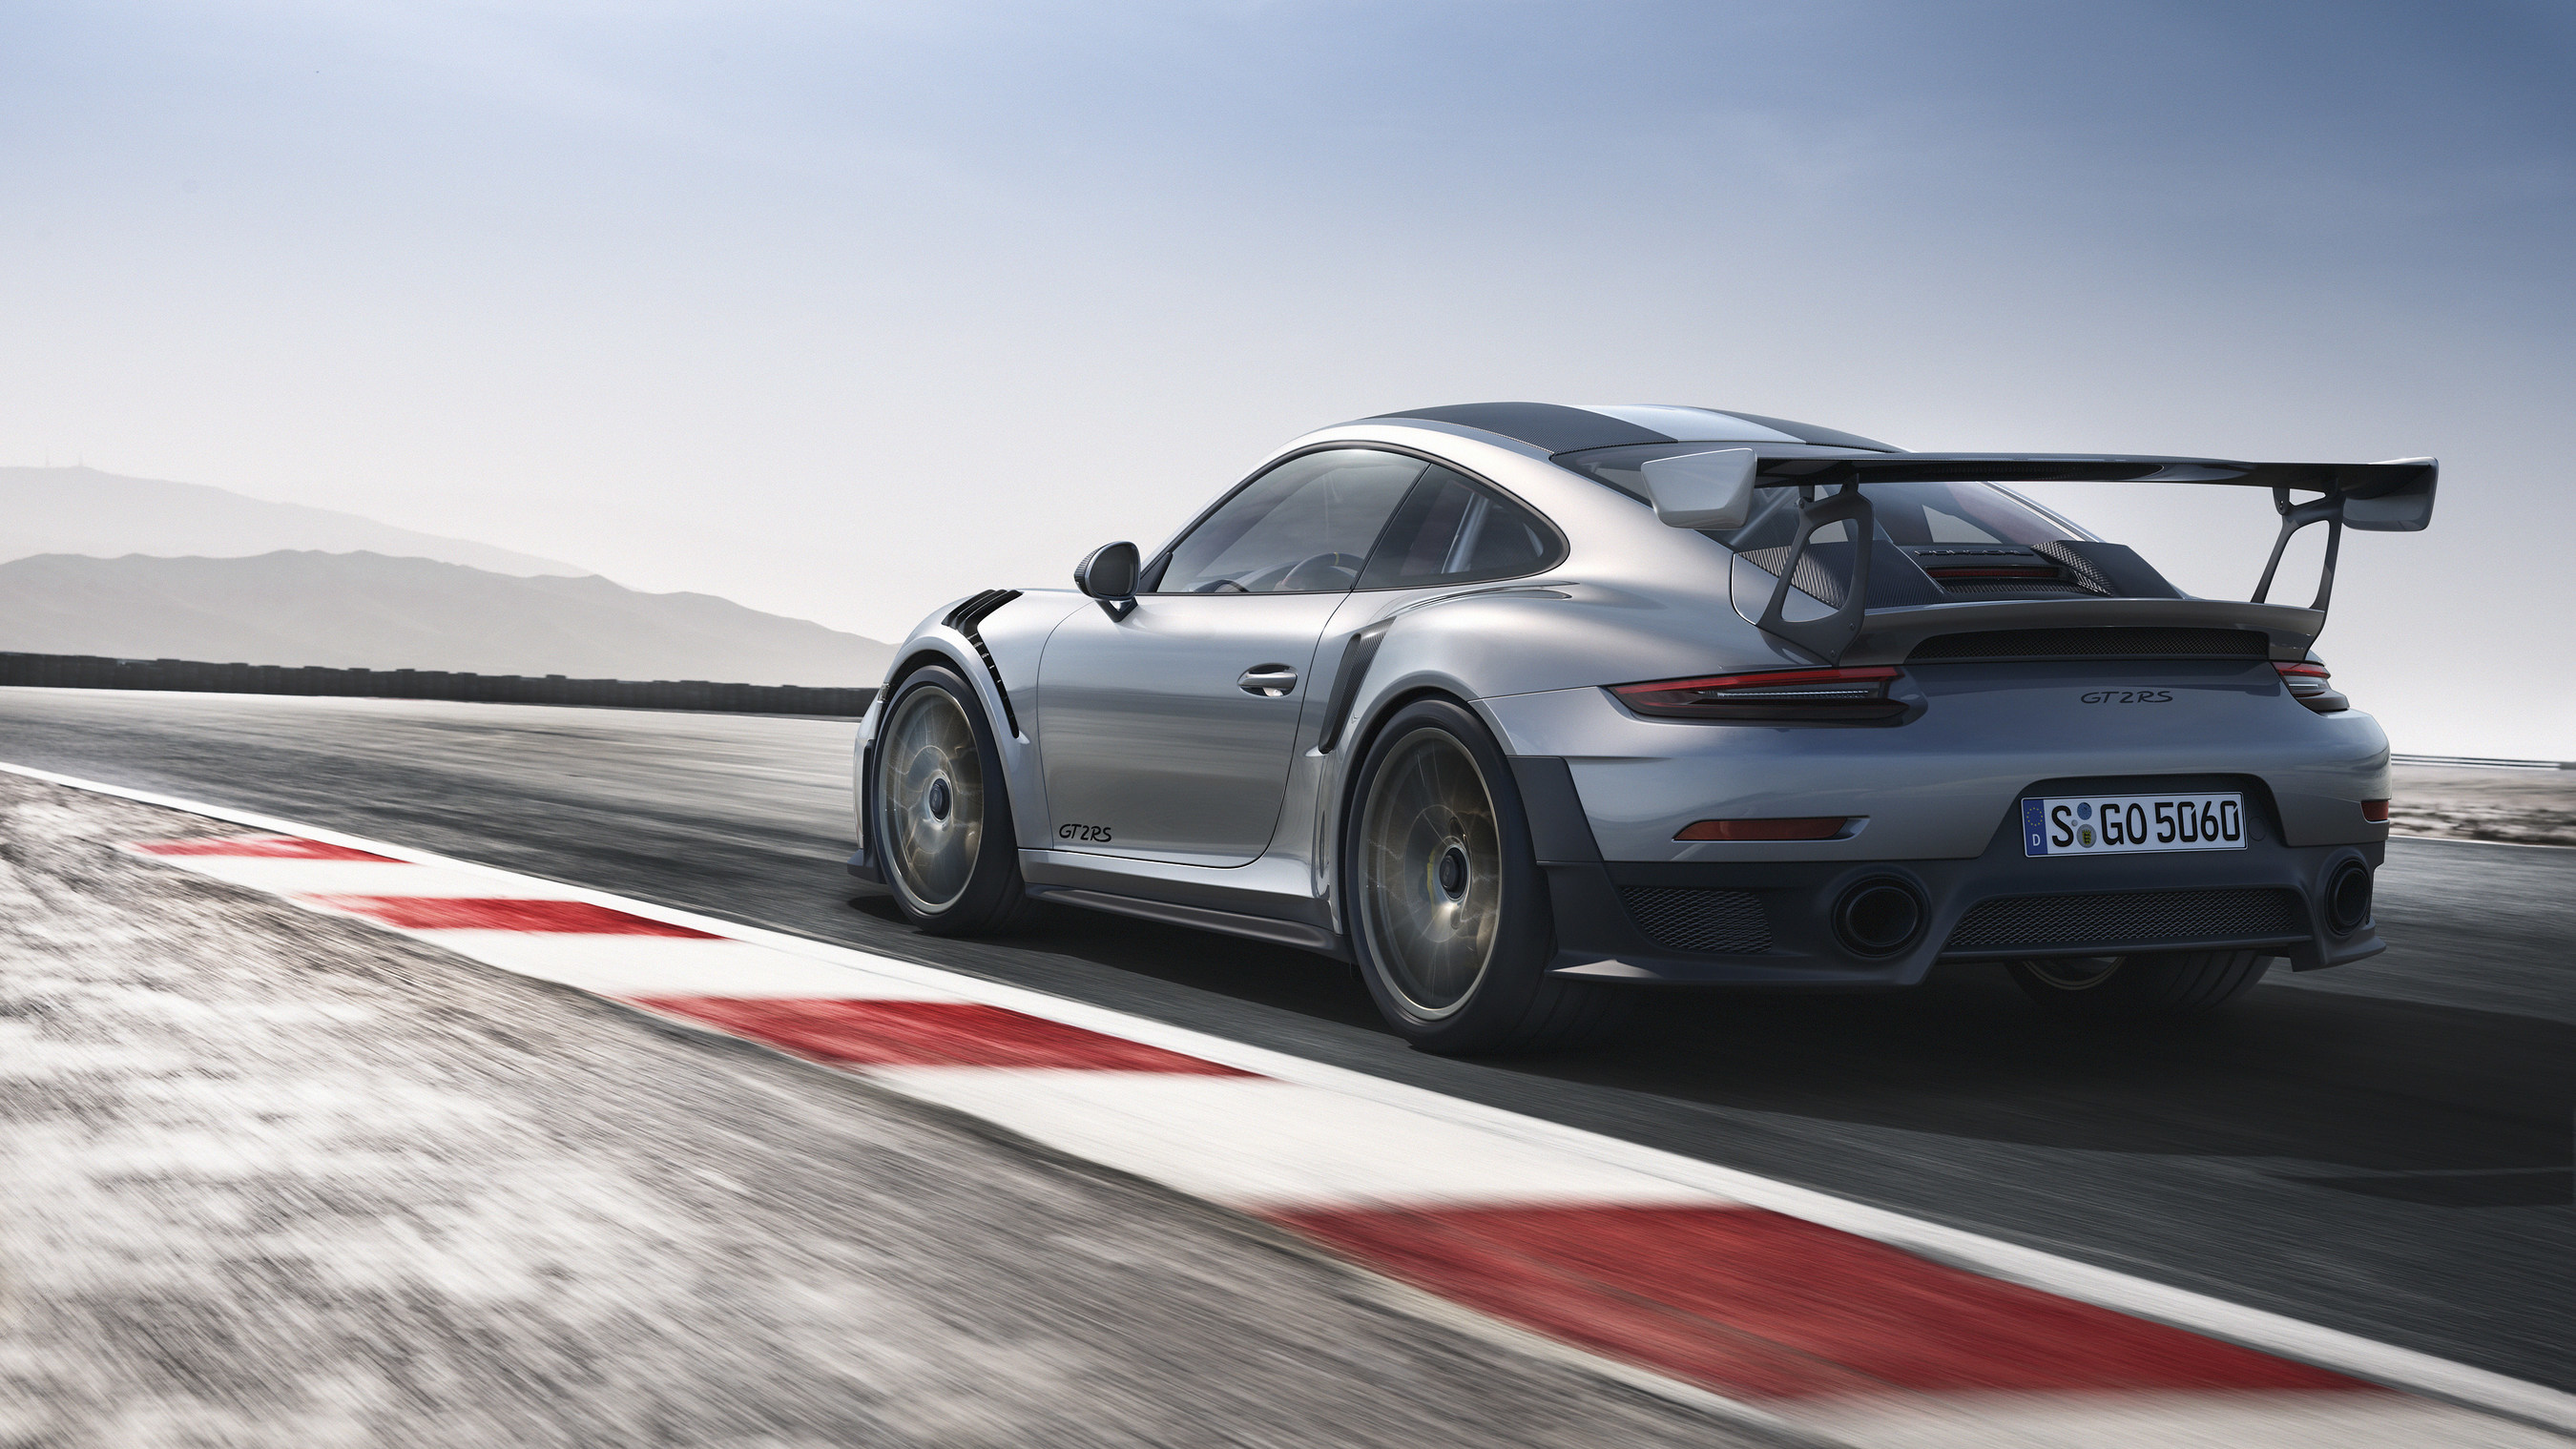 2ee66cce446a4 Porsche Cars Canada Porsche unveils the most powerful 911 of all.jpg p publish